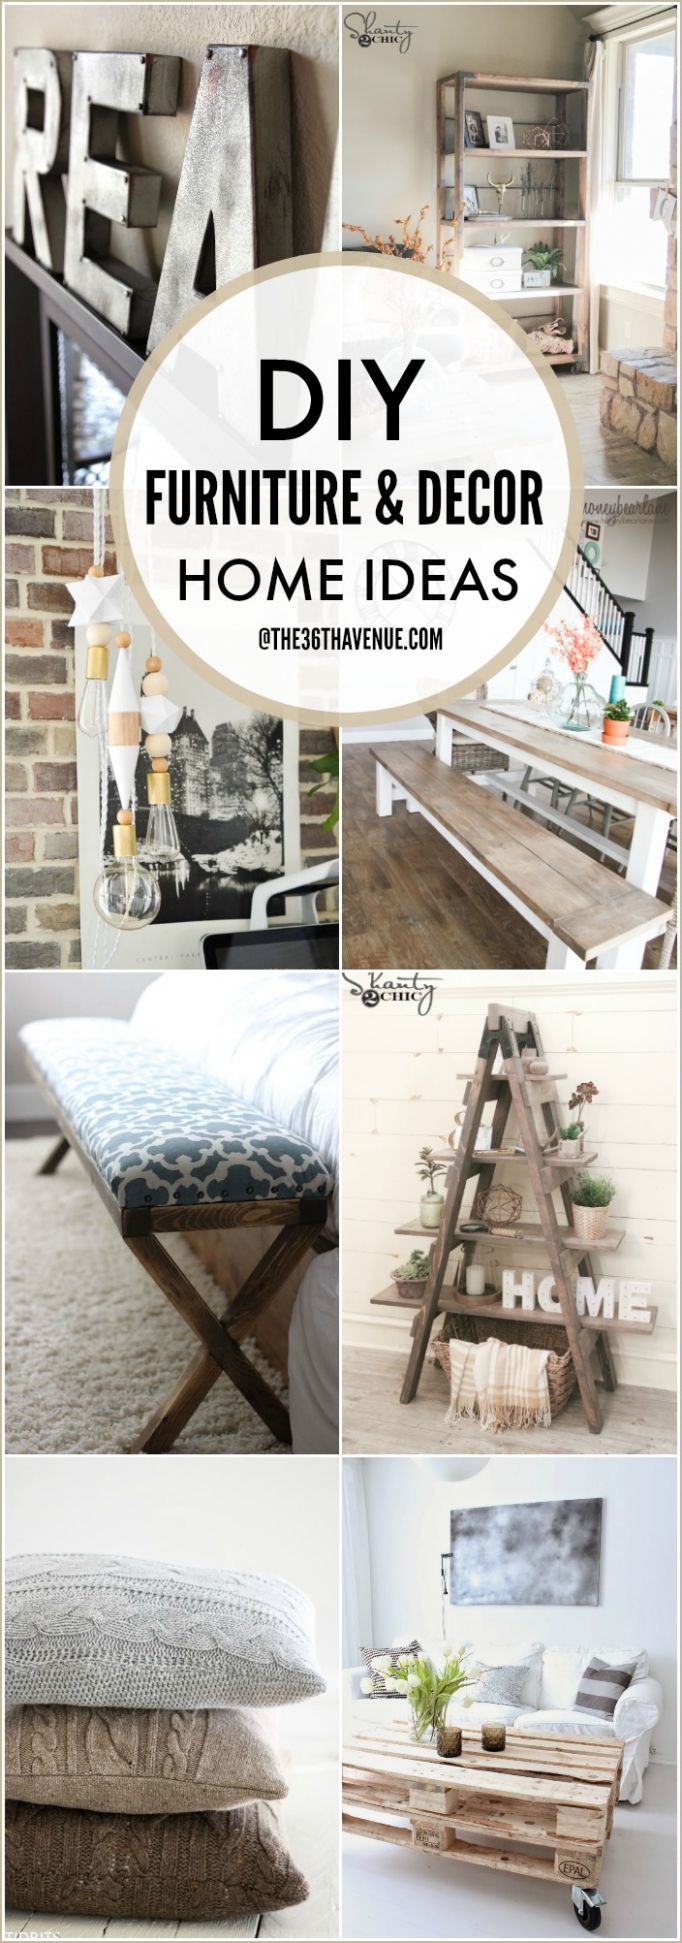 DIY Furniture and Home Decor Tutorials | The 9th AVENUE - diy home decor and furniture